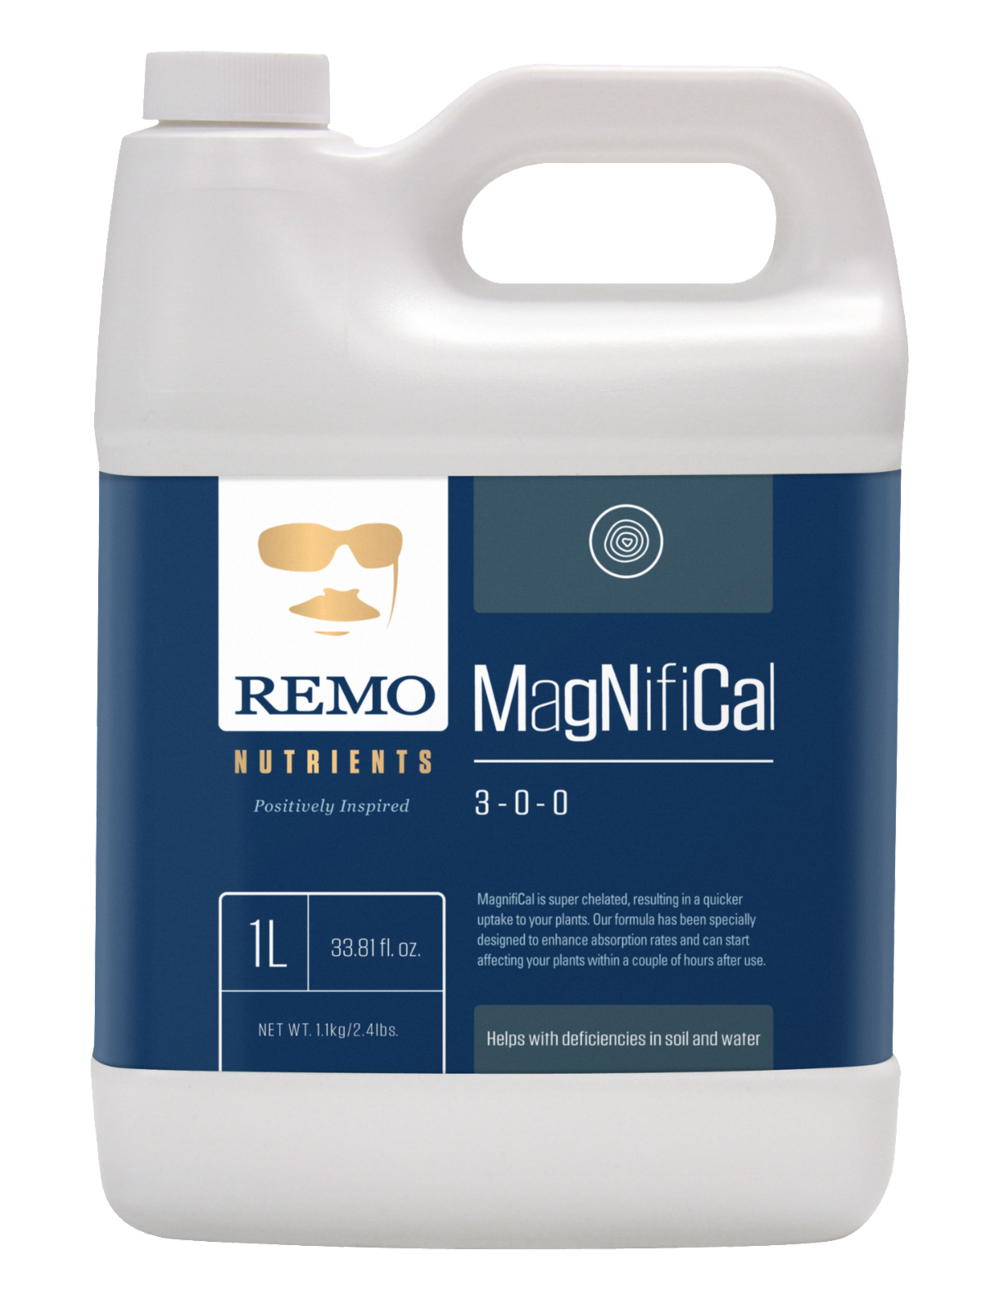 REMO'S MAGNIFICAL 1 LITER